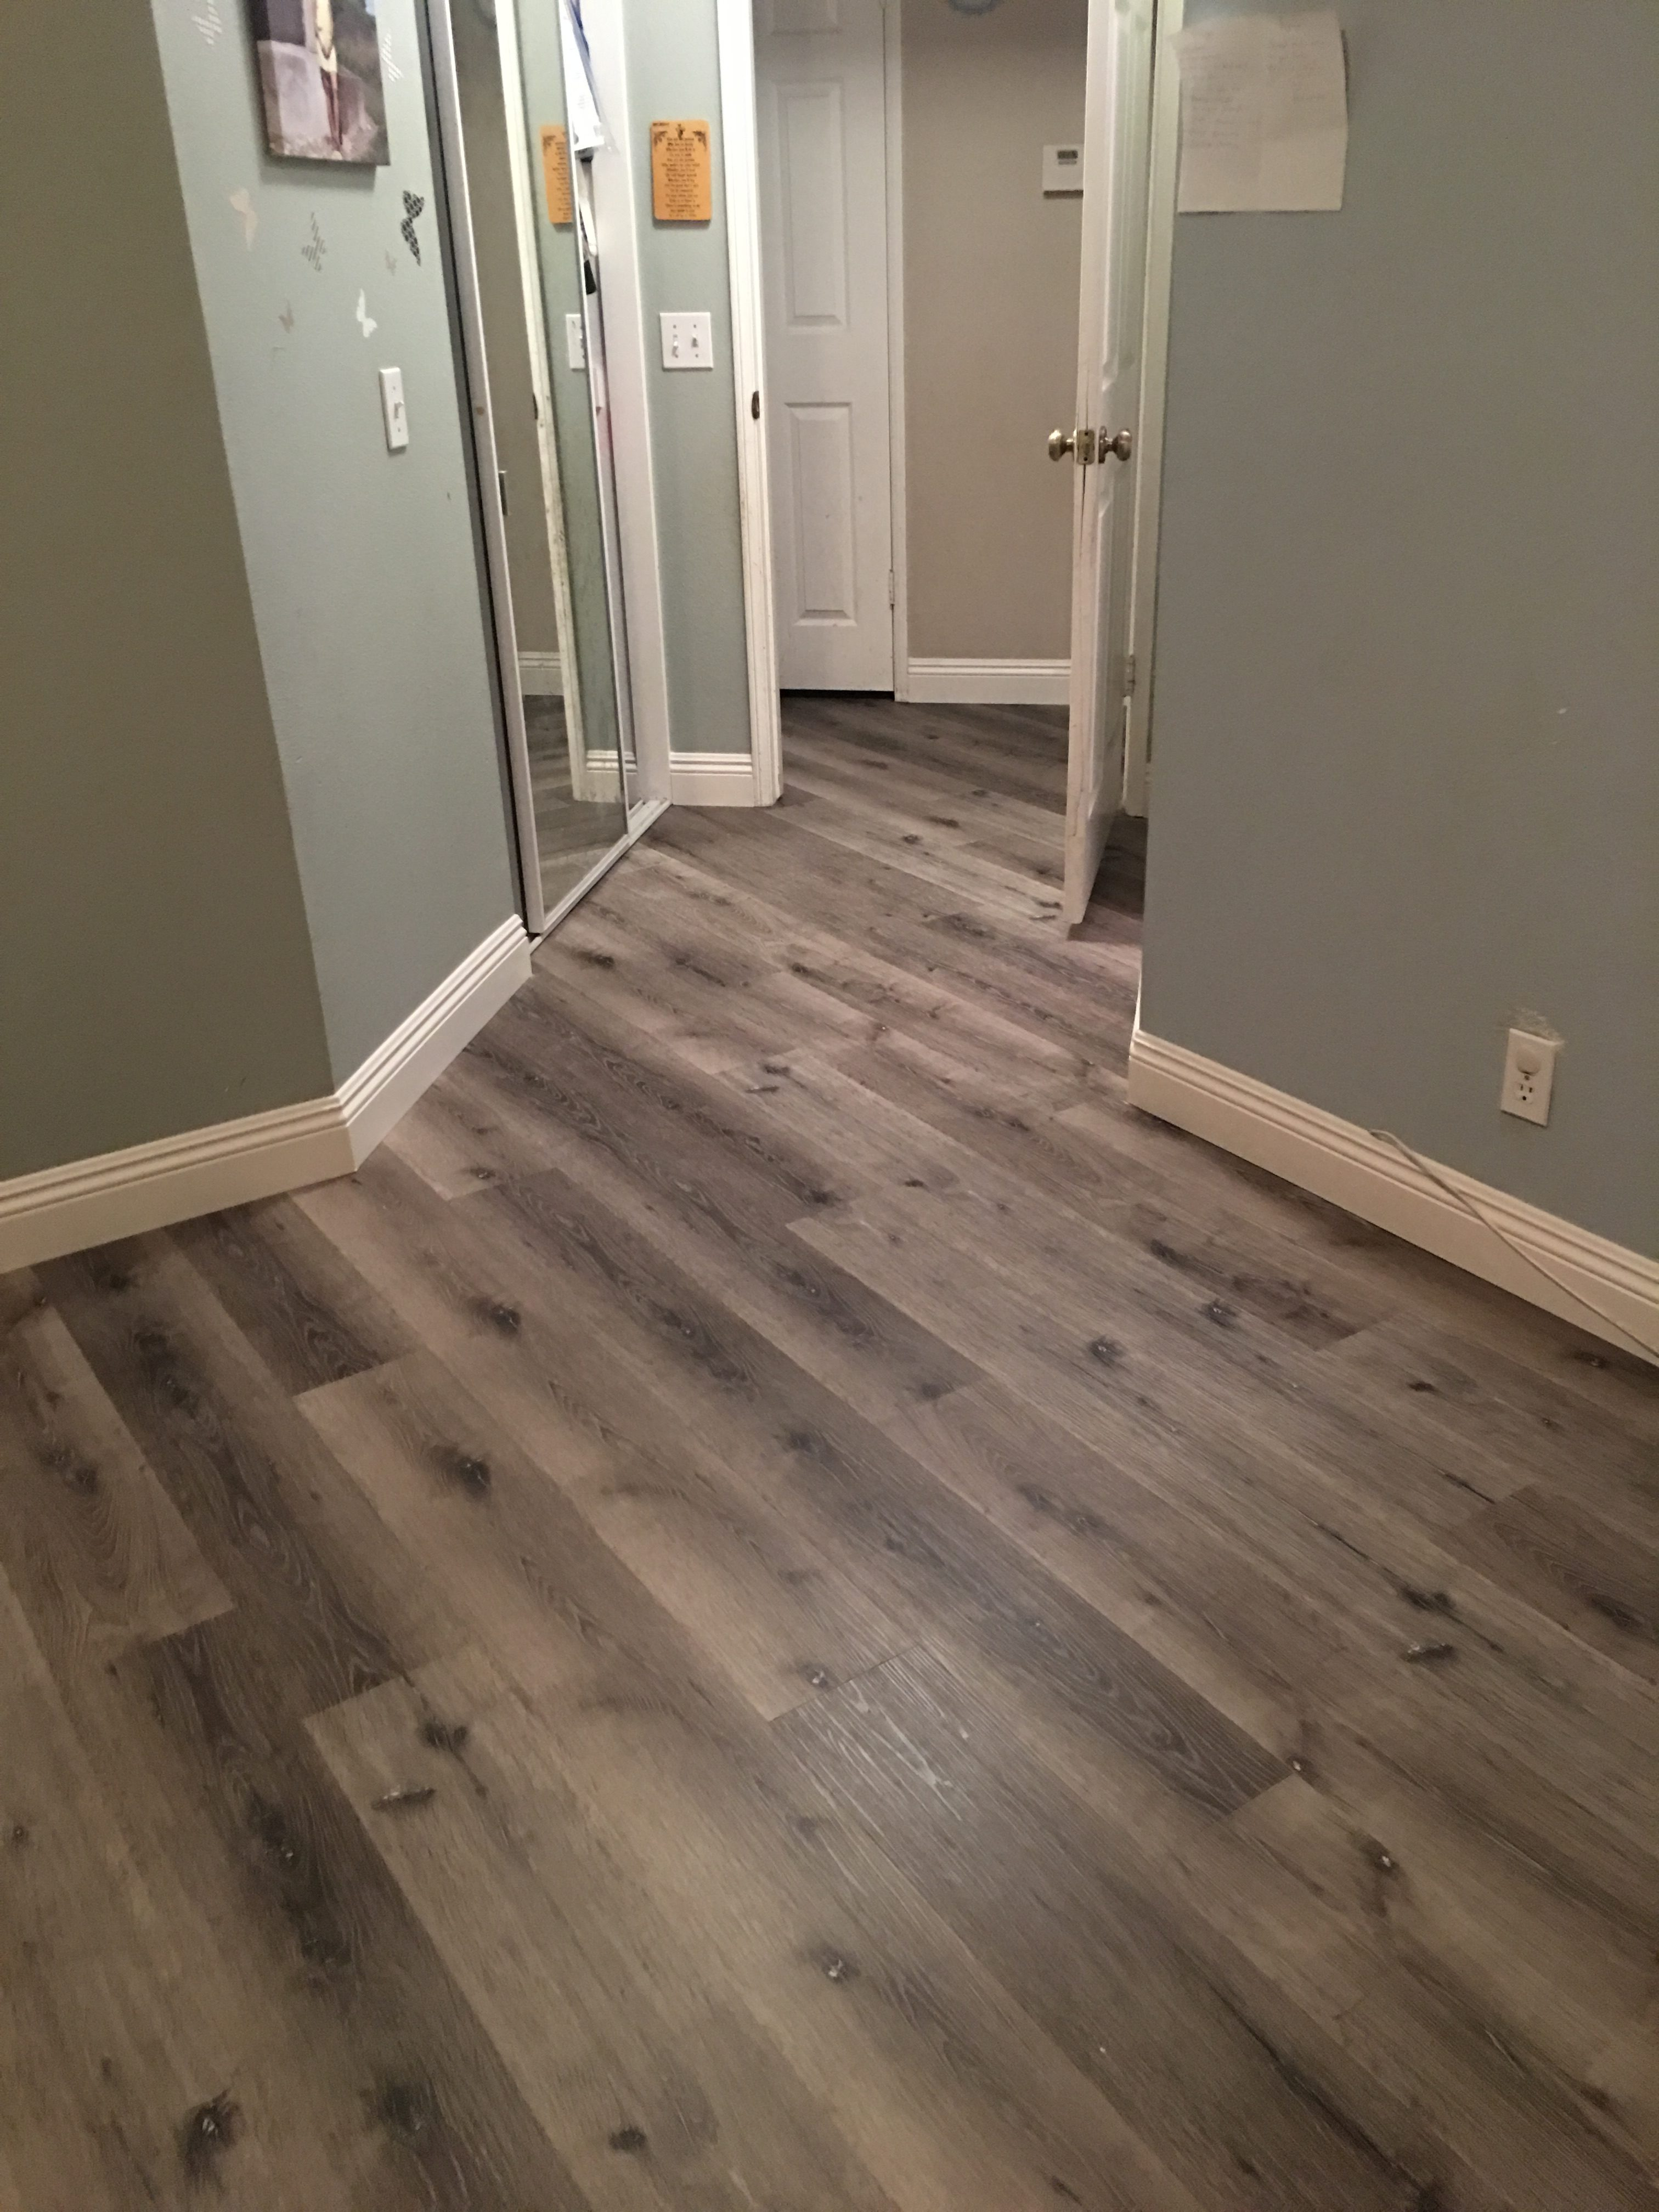 Mission Viejo Flooring I Orange County Flooring Company I Flooring Installation I Luxury Vinyl Planks